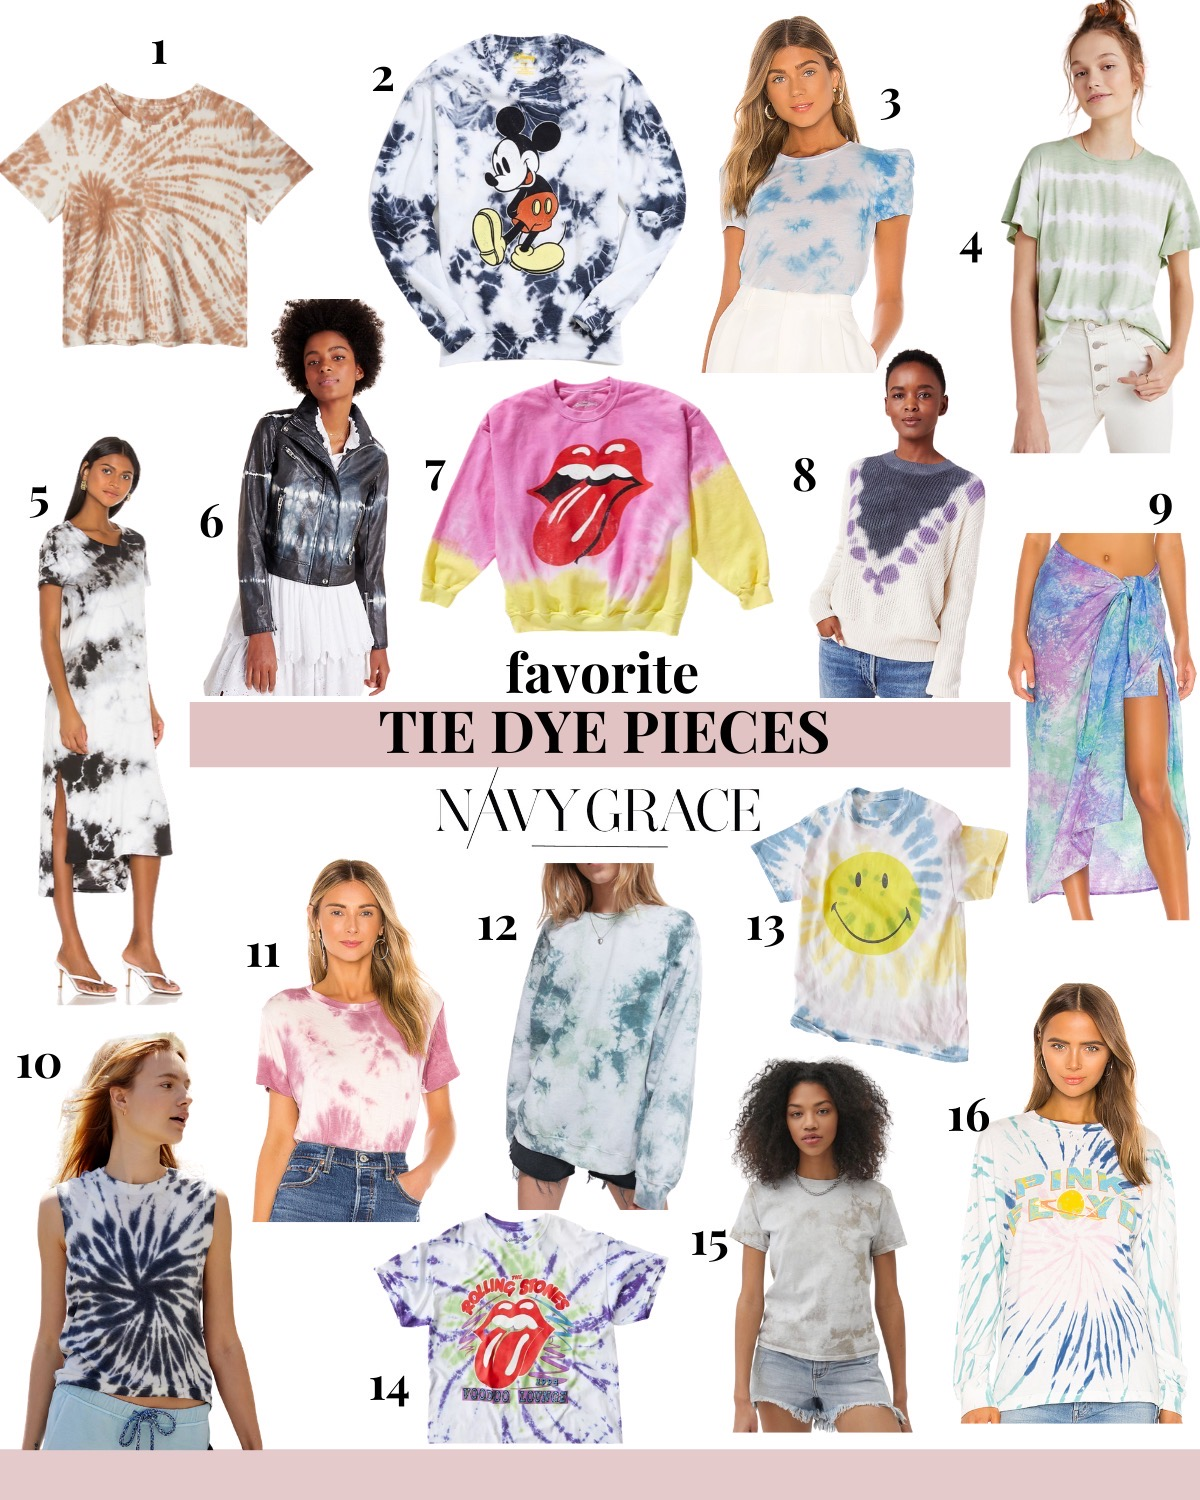 Tie Dye Fashion by popular San Diego fashion blog, Navy Grace: collage image of Mickey Mouse tie dye sweatshirt, Evereve boxy tie dye t-shirt, Urban Outfitters tie dye smily face t-shirt, tie dye dress, Rolling Stones tie dye t-shirt, tie dye wrap, tie dye jacket, rolling stone tie dye sweatshirt, tie dye sarong, and Love Activewear Tank.